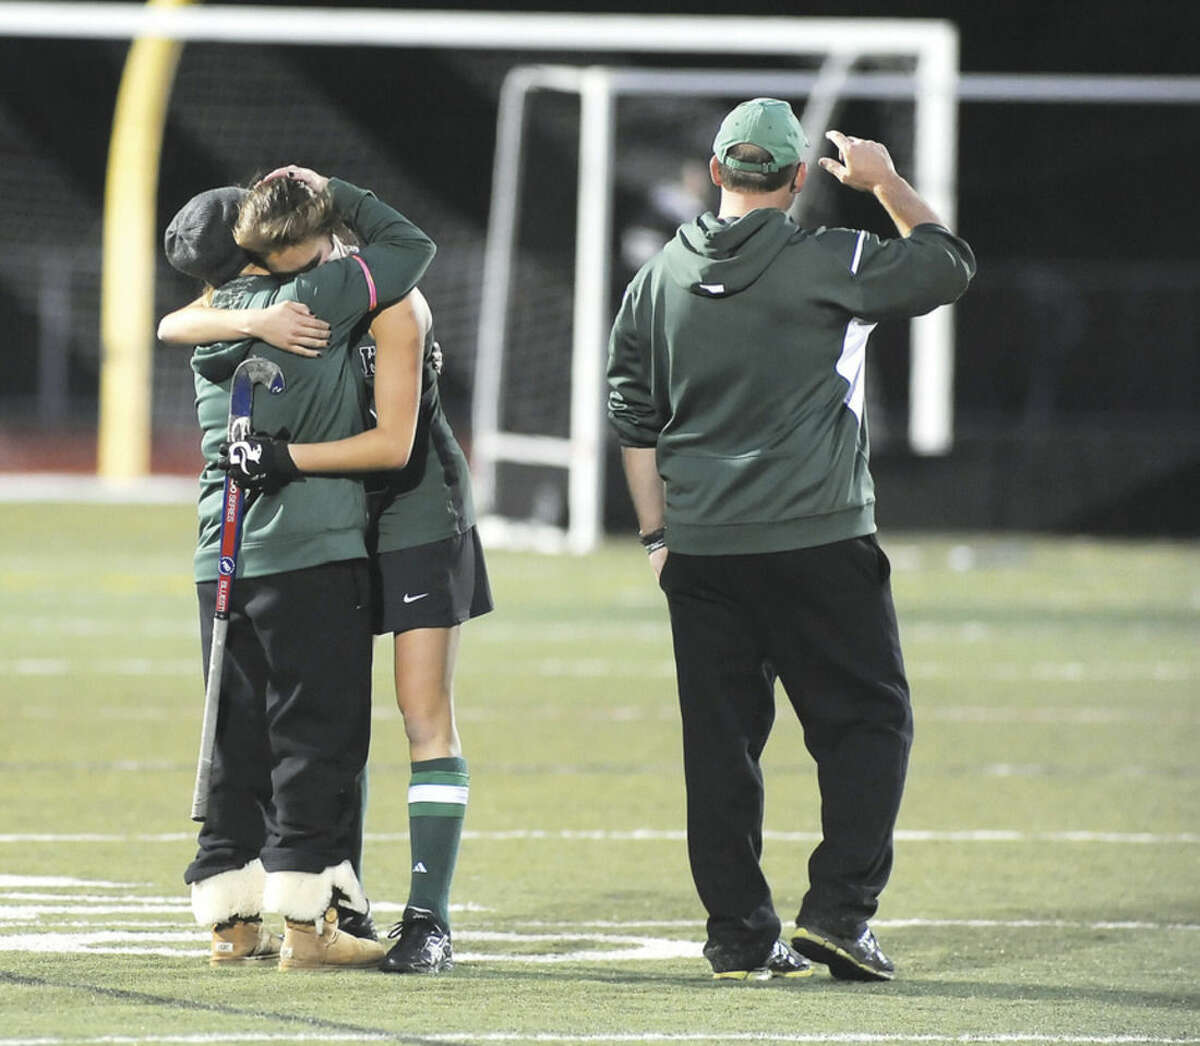 Hour photo/John Nash Norwalk senior captain Sam Bardos, second from left, embraces her assistant coach as head coach Kyle Seaburg looks off into the distance after their team's 2-1 overtime loss to Simsbury.